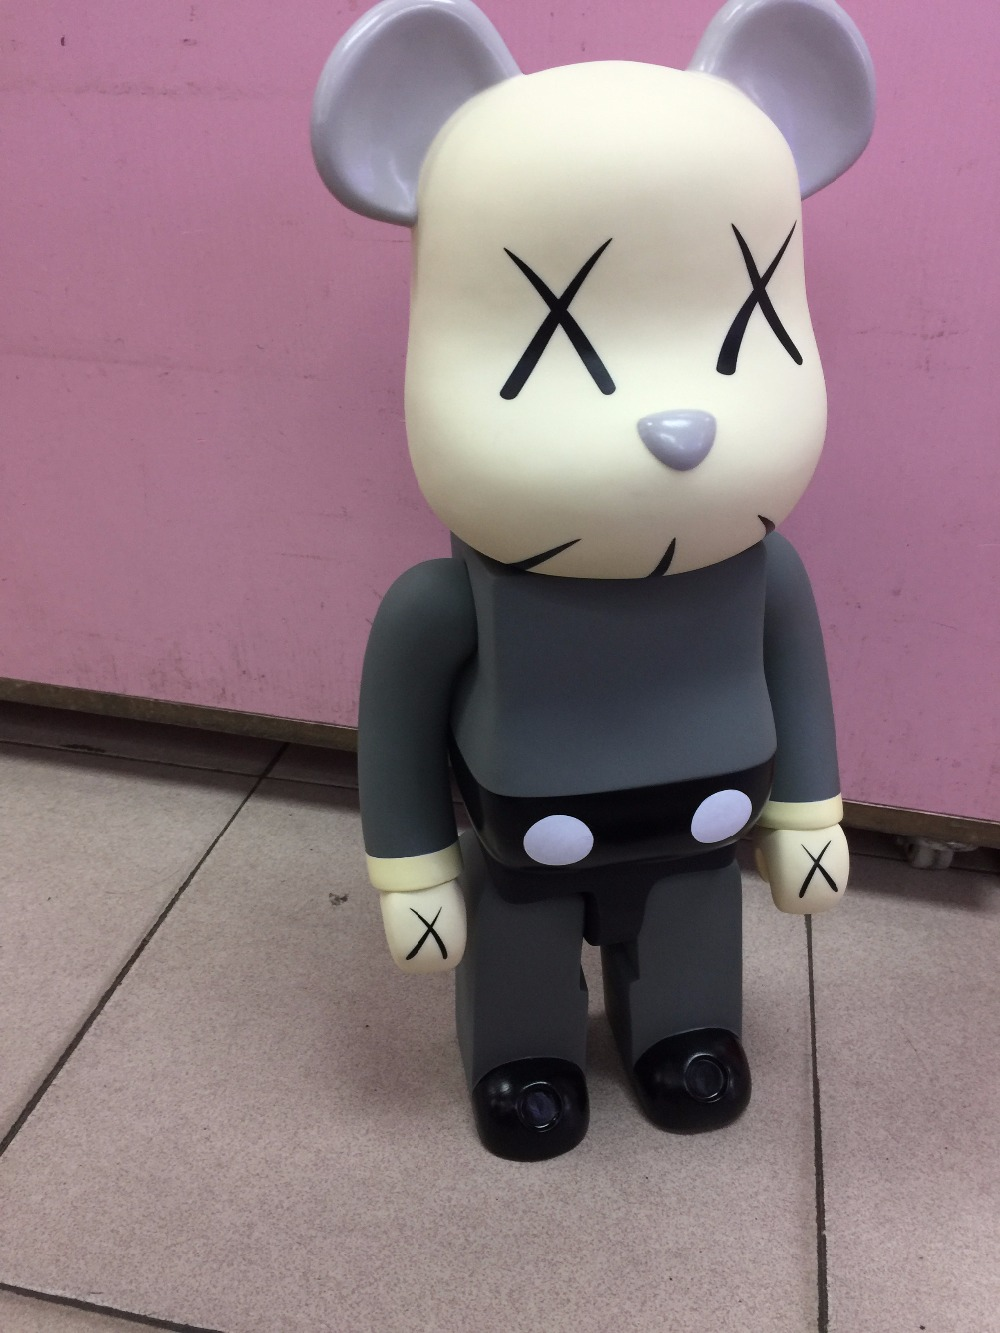 700% 52CM Kaws bearbrick bear@brick Cos Kaws Bear Doll PVC Action Figure Toy Art Work Great Gift for Friends juguetes Figures new arrival be rbrick bear bearbrick pvc action figure toy 52cm vinyl art figure as a gift for boyfriends